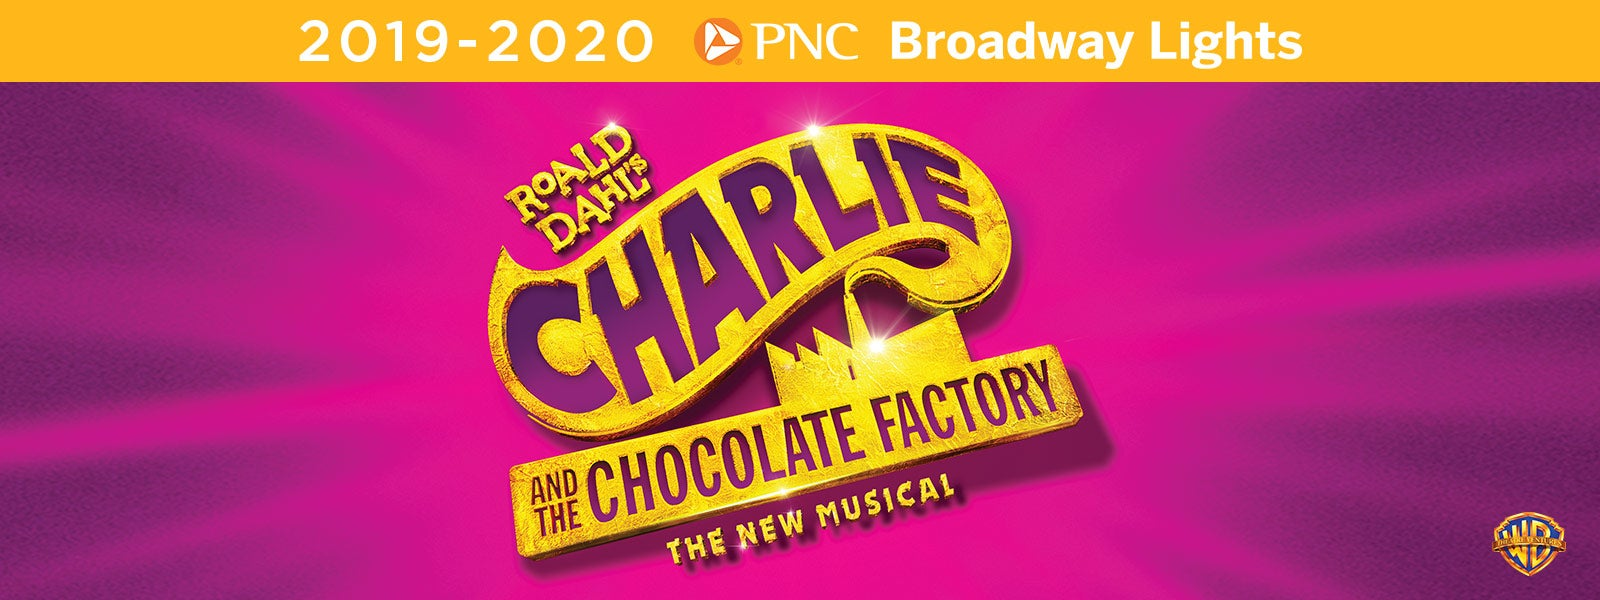 Charlie-and-the-Chocolate-Factory_1600x600_BRANDED.jpg